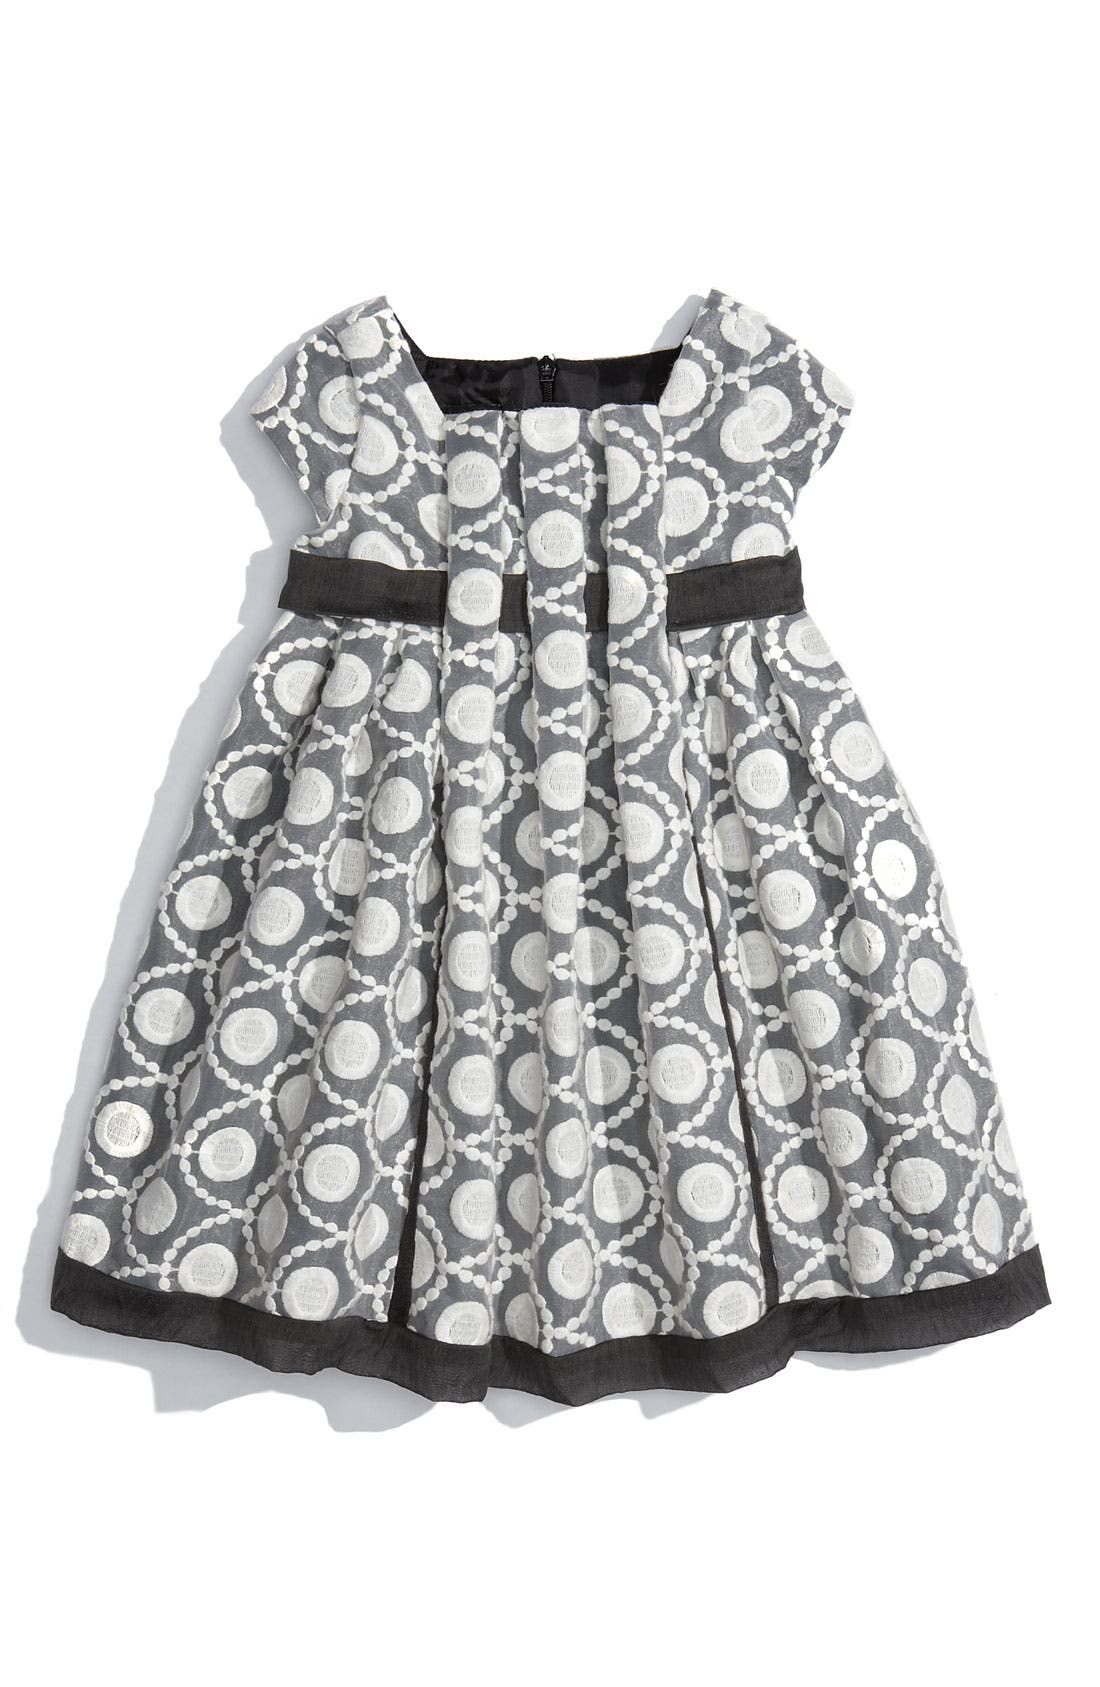 Alternate Image 1 Selected - Isobella & Chloe 'Blair' Dress (Infant)